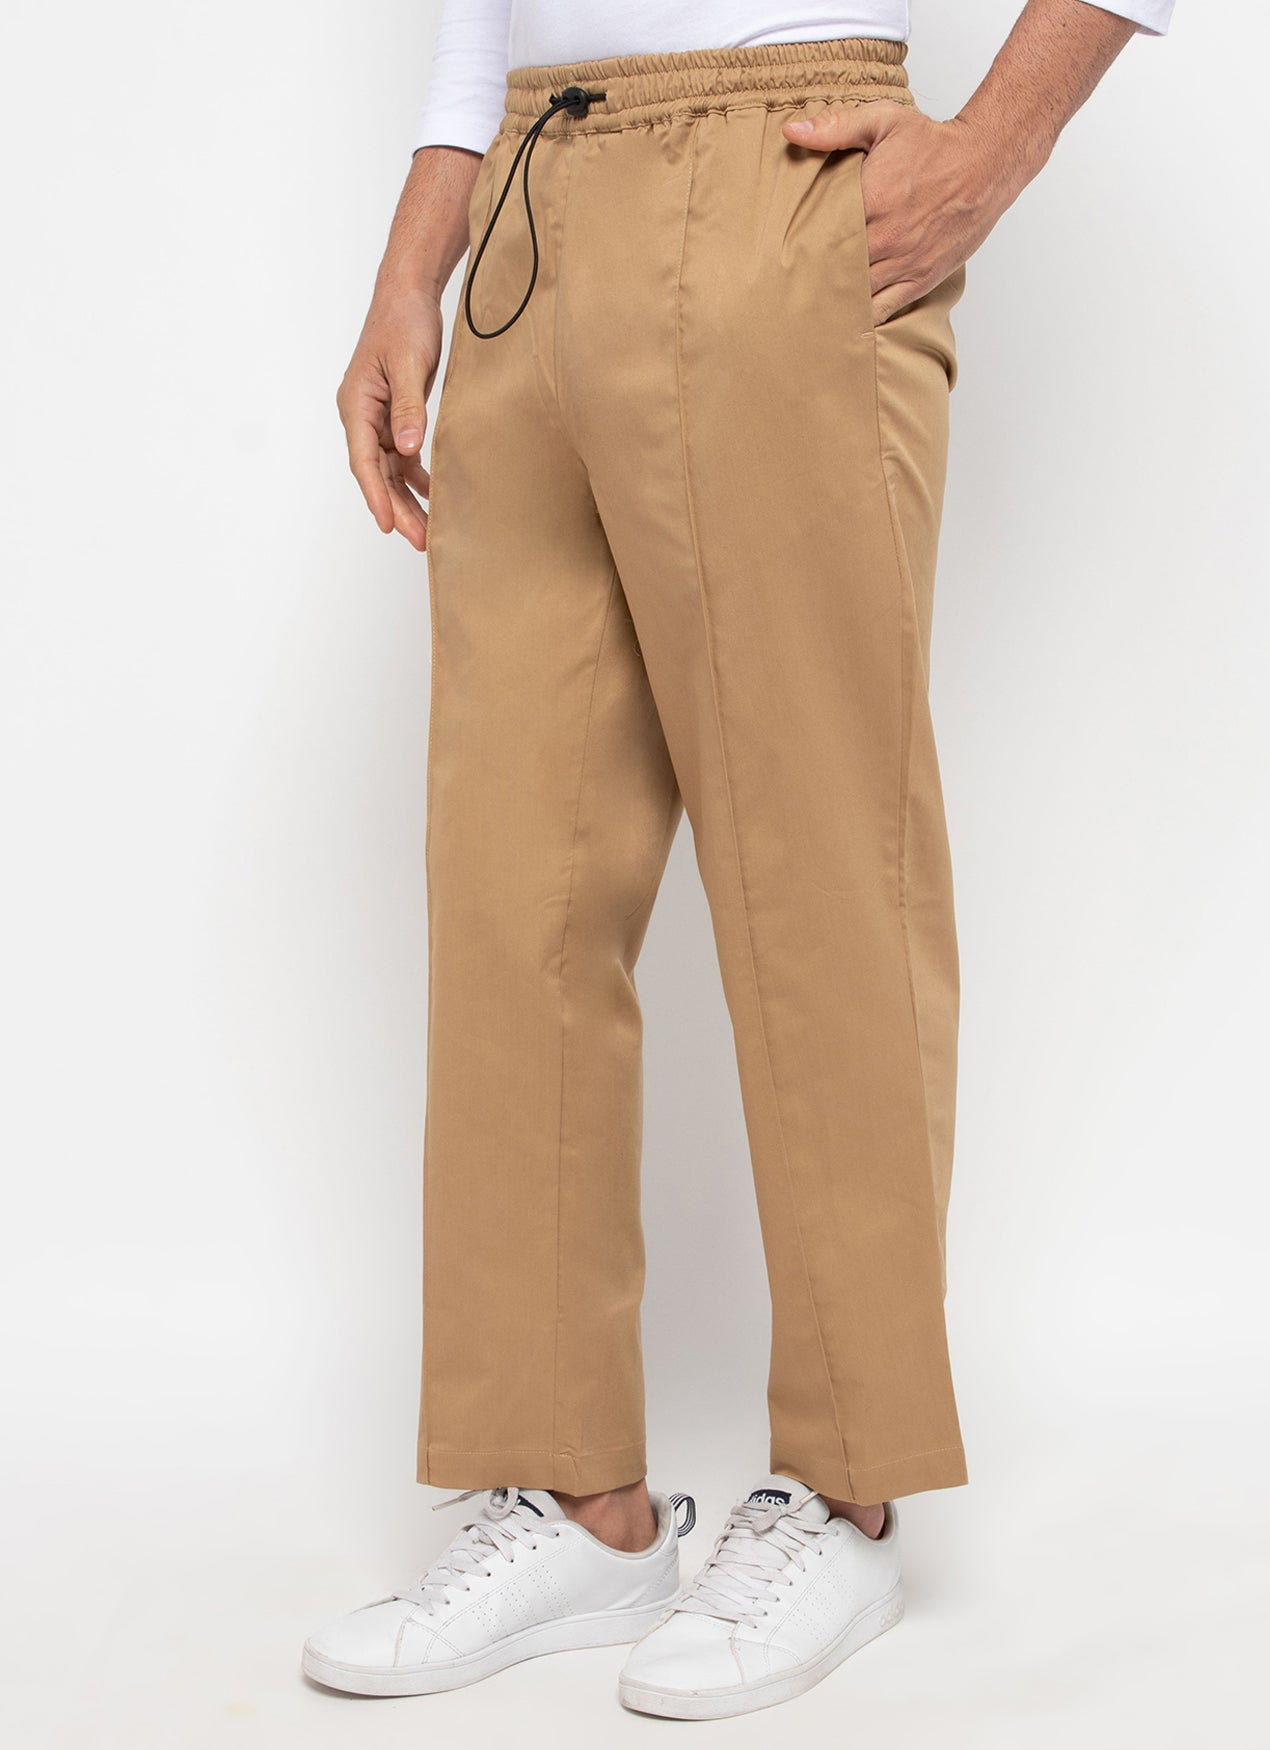 Tunnel Pants